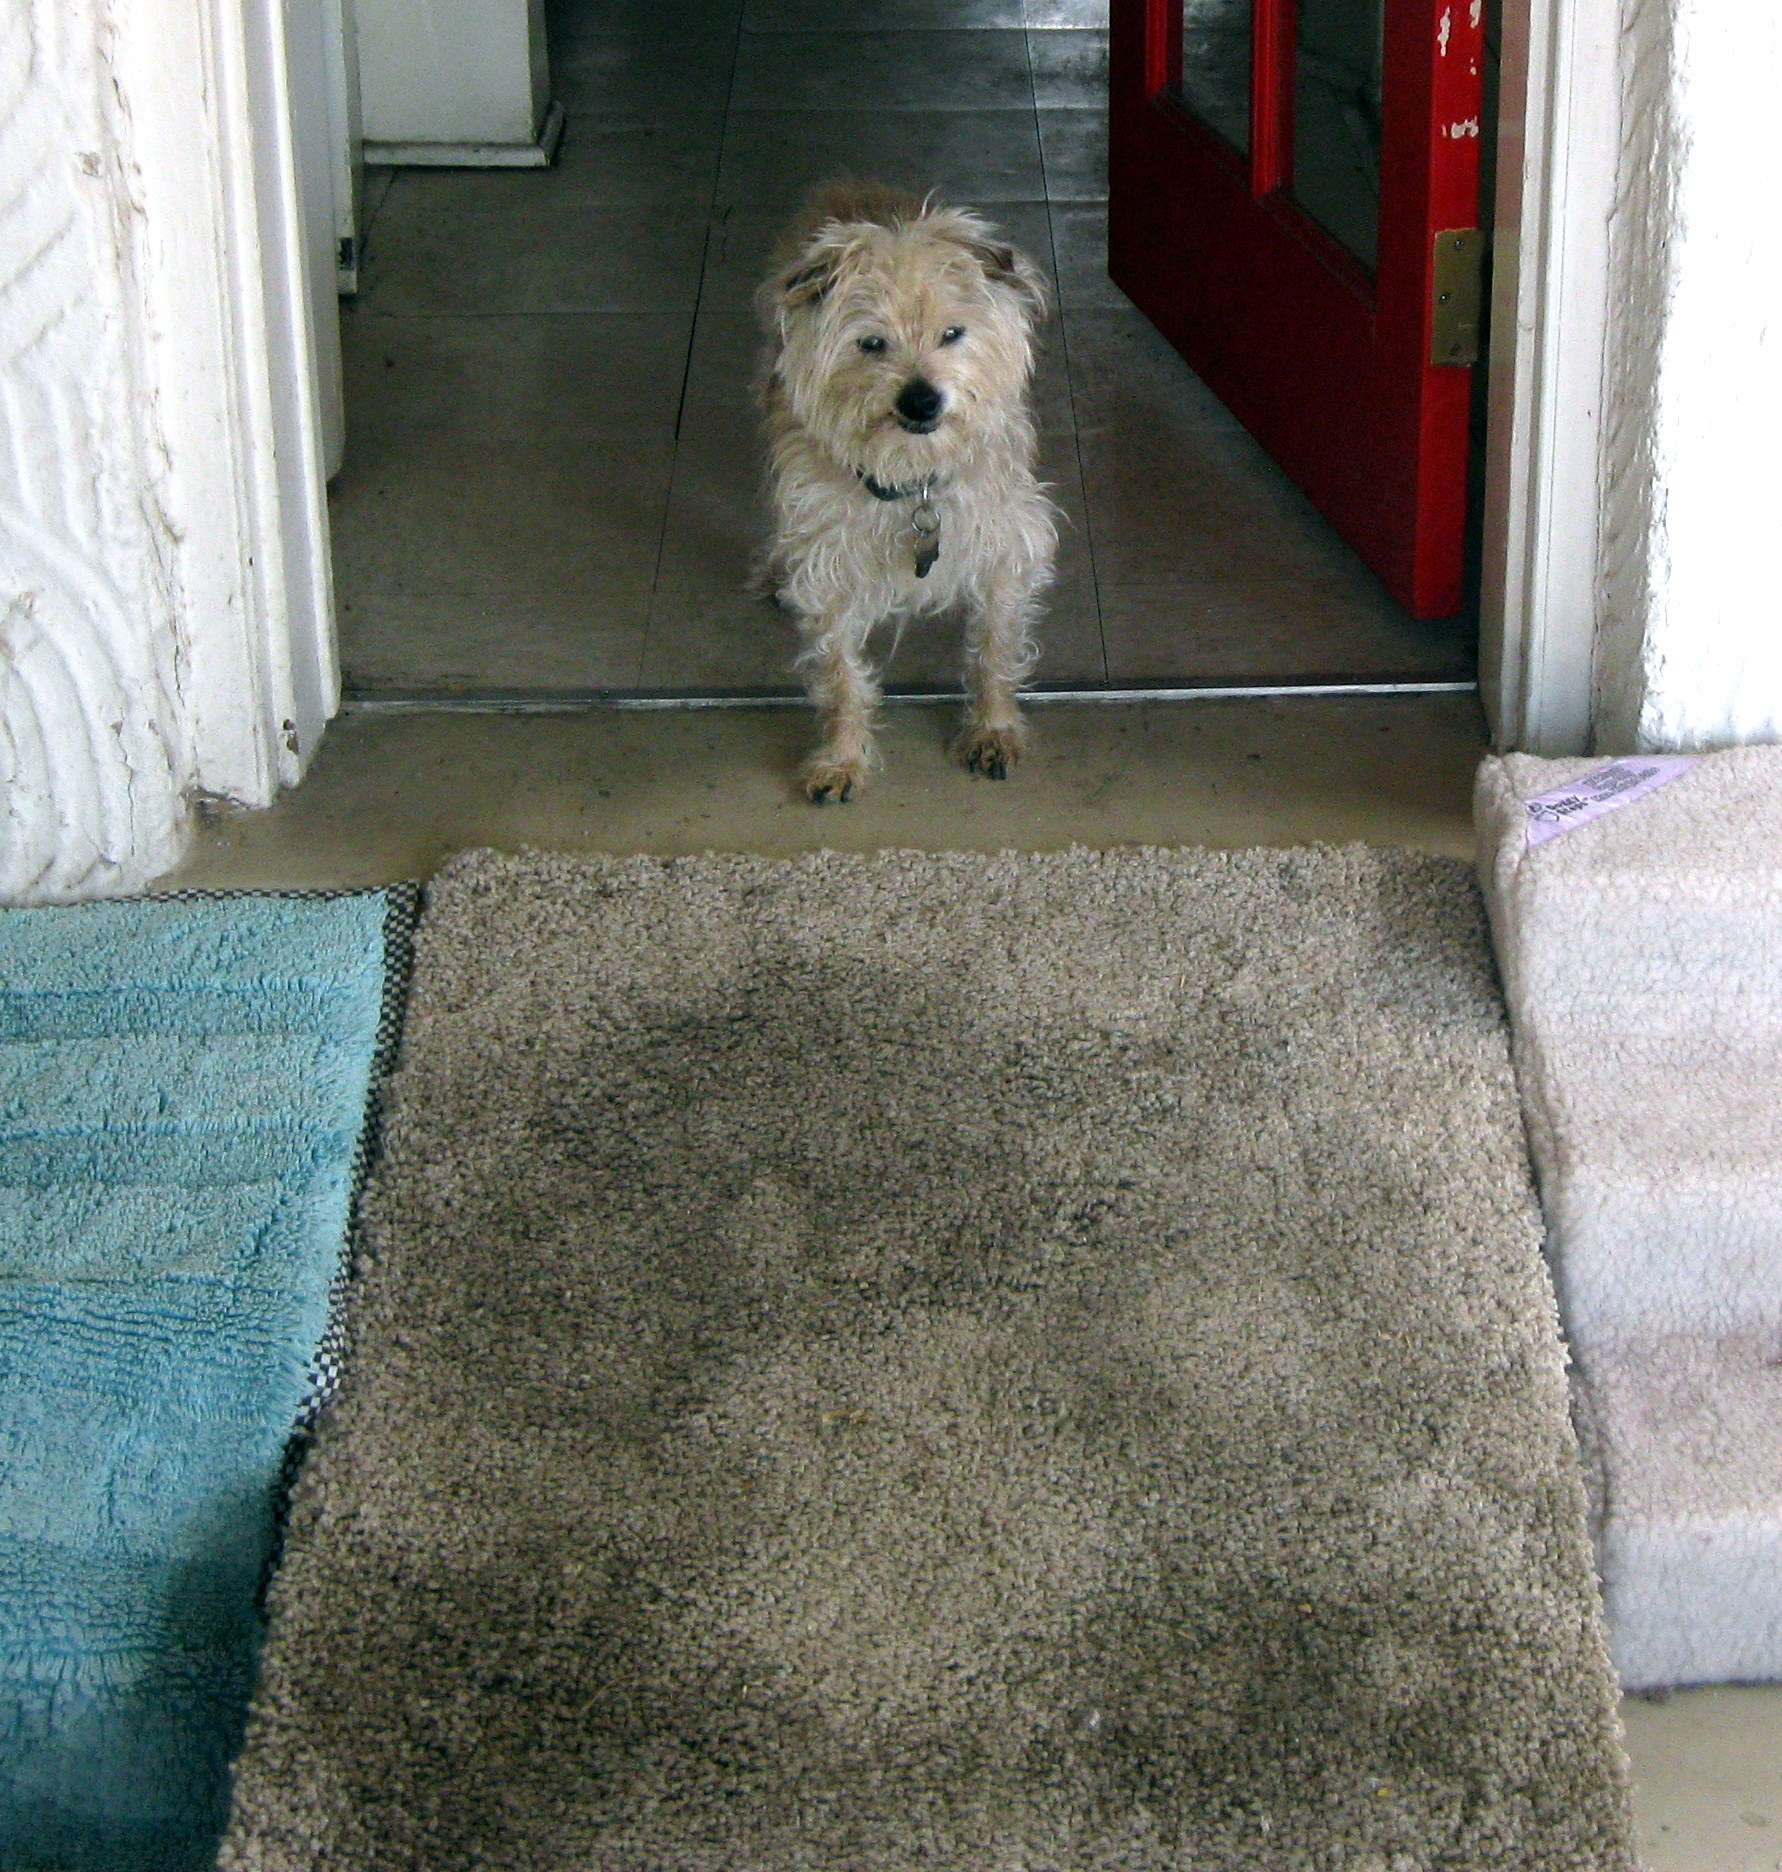 My Dog Peed On My New Rug: The Frankie Diaries, 9/18: The Physics Of Dog Pee